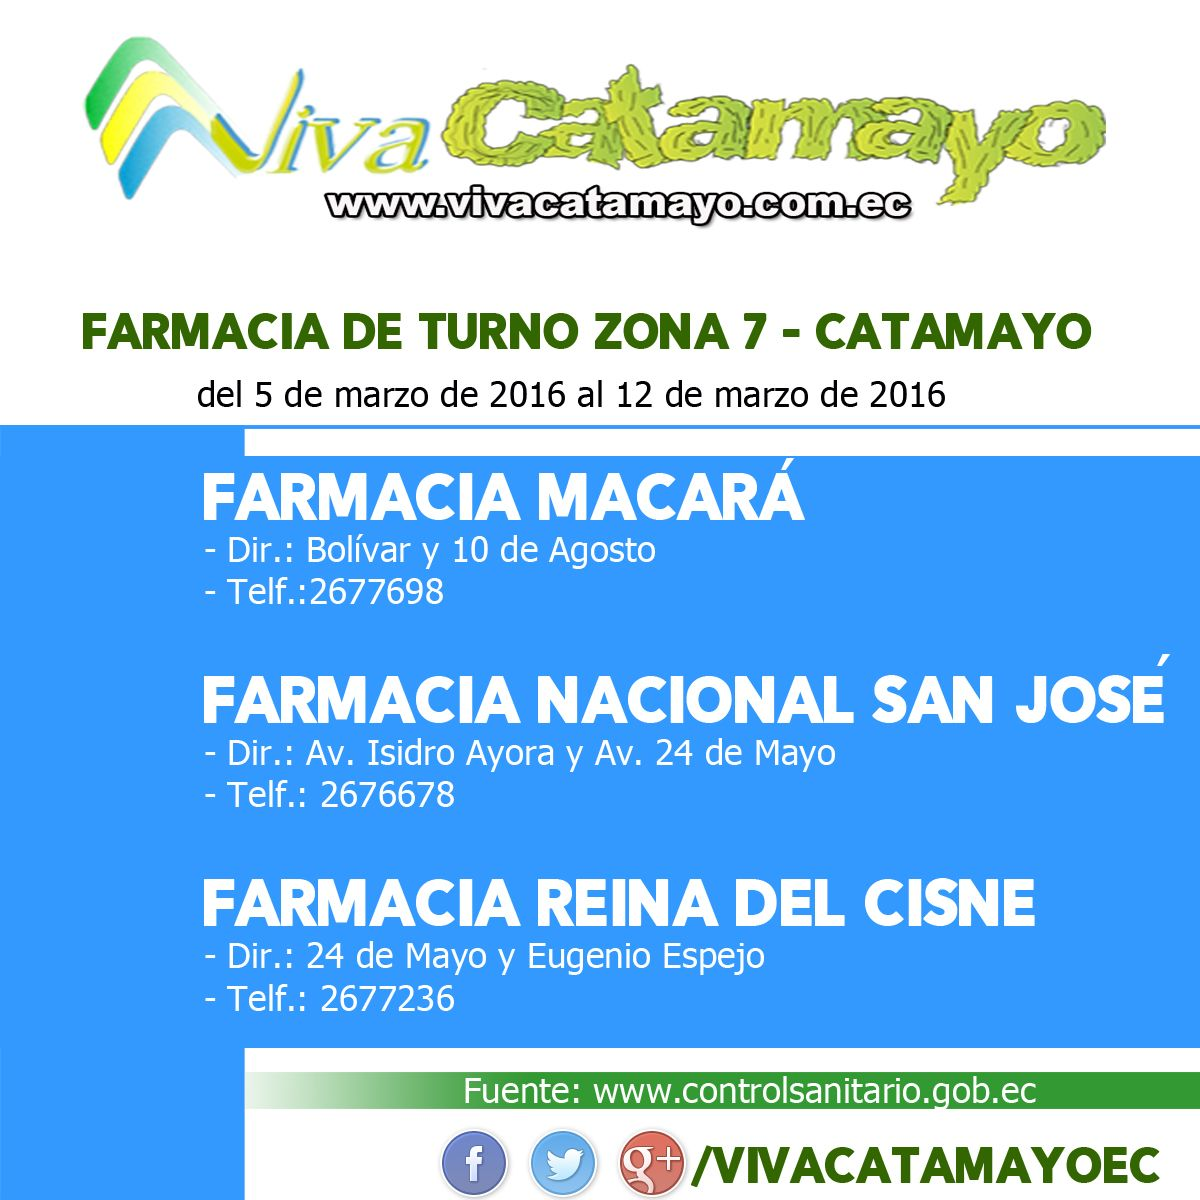 Farmacias de Turno 2016